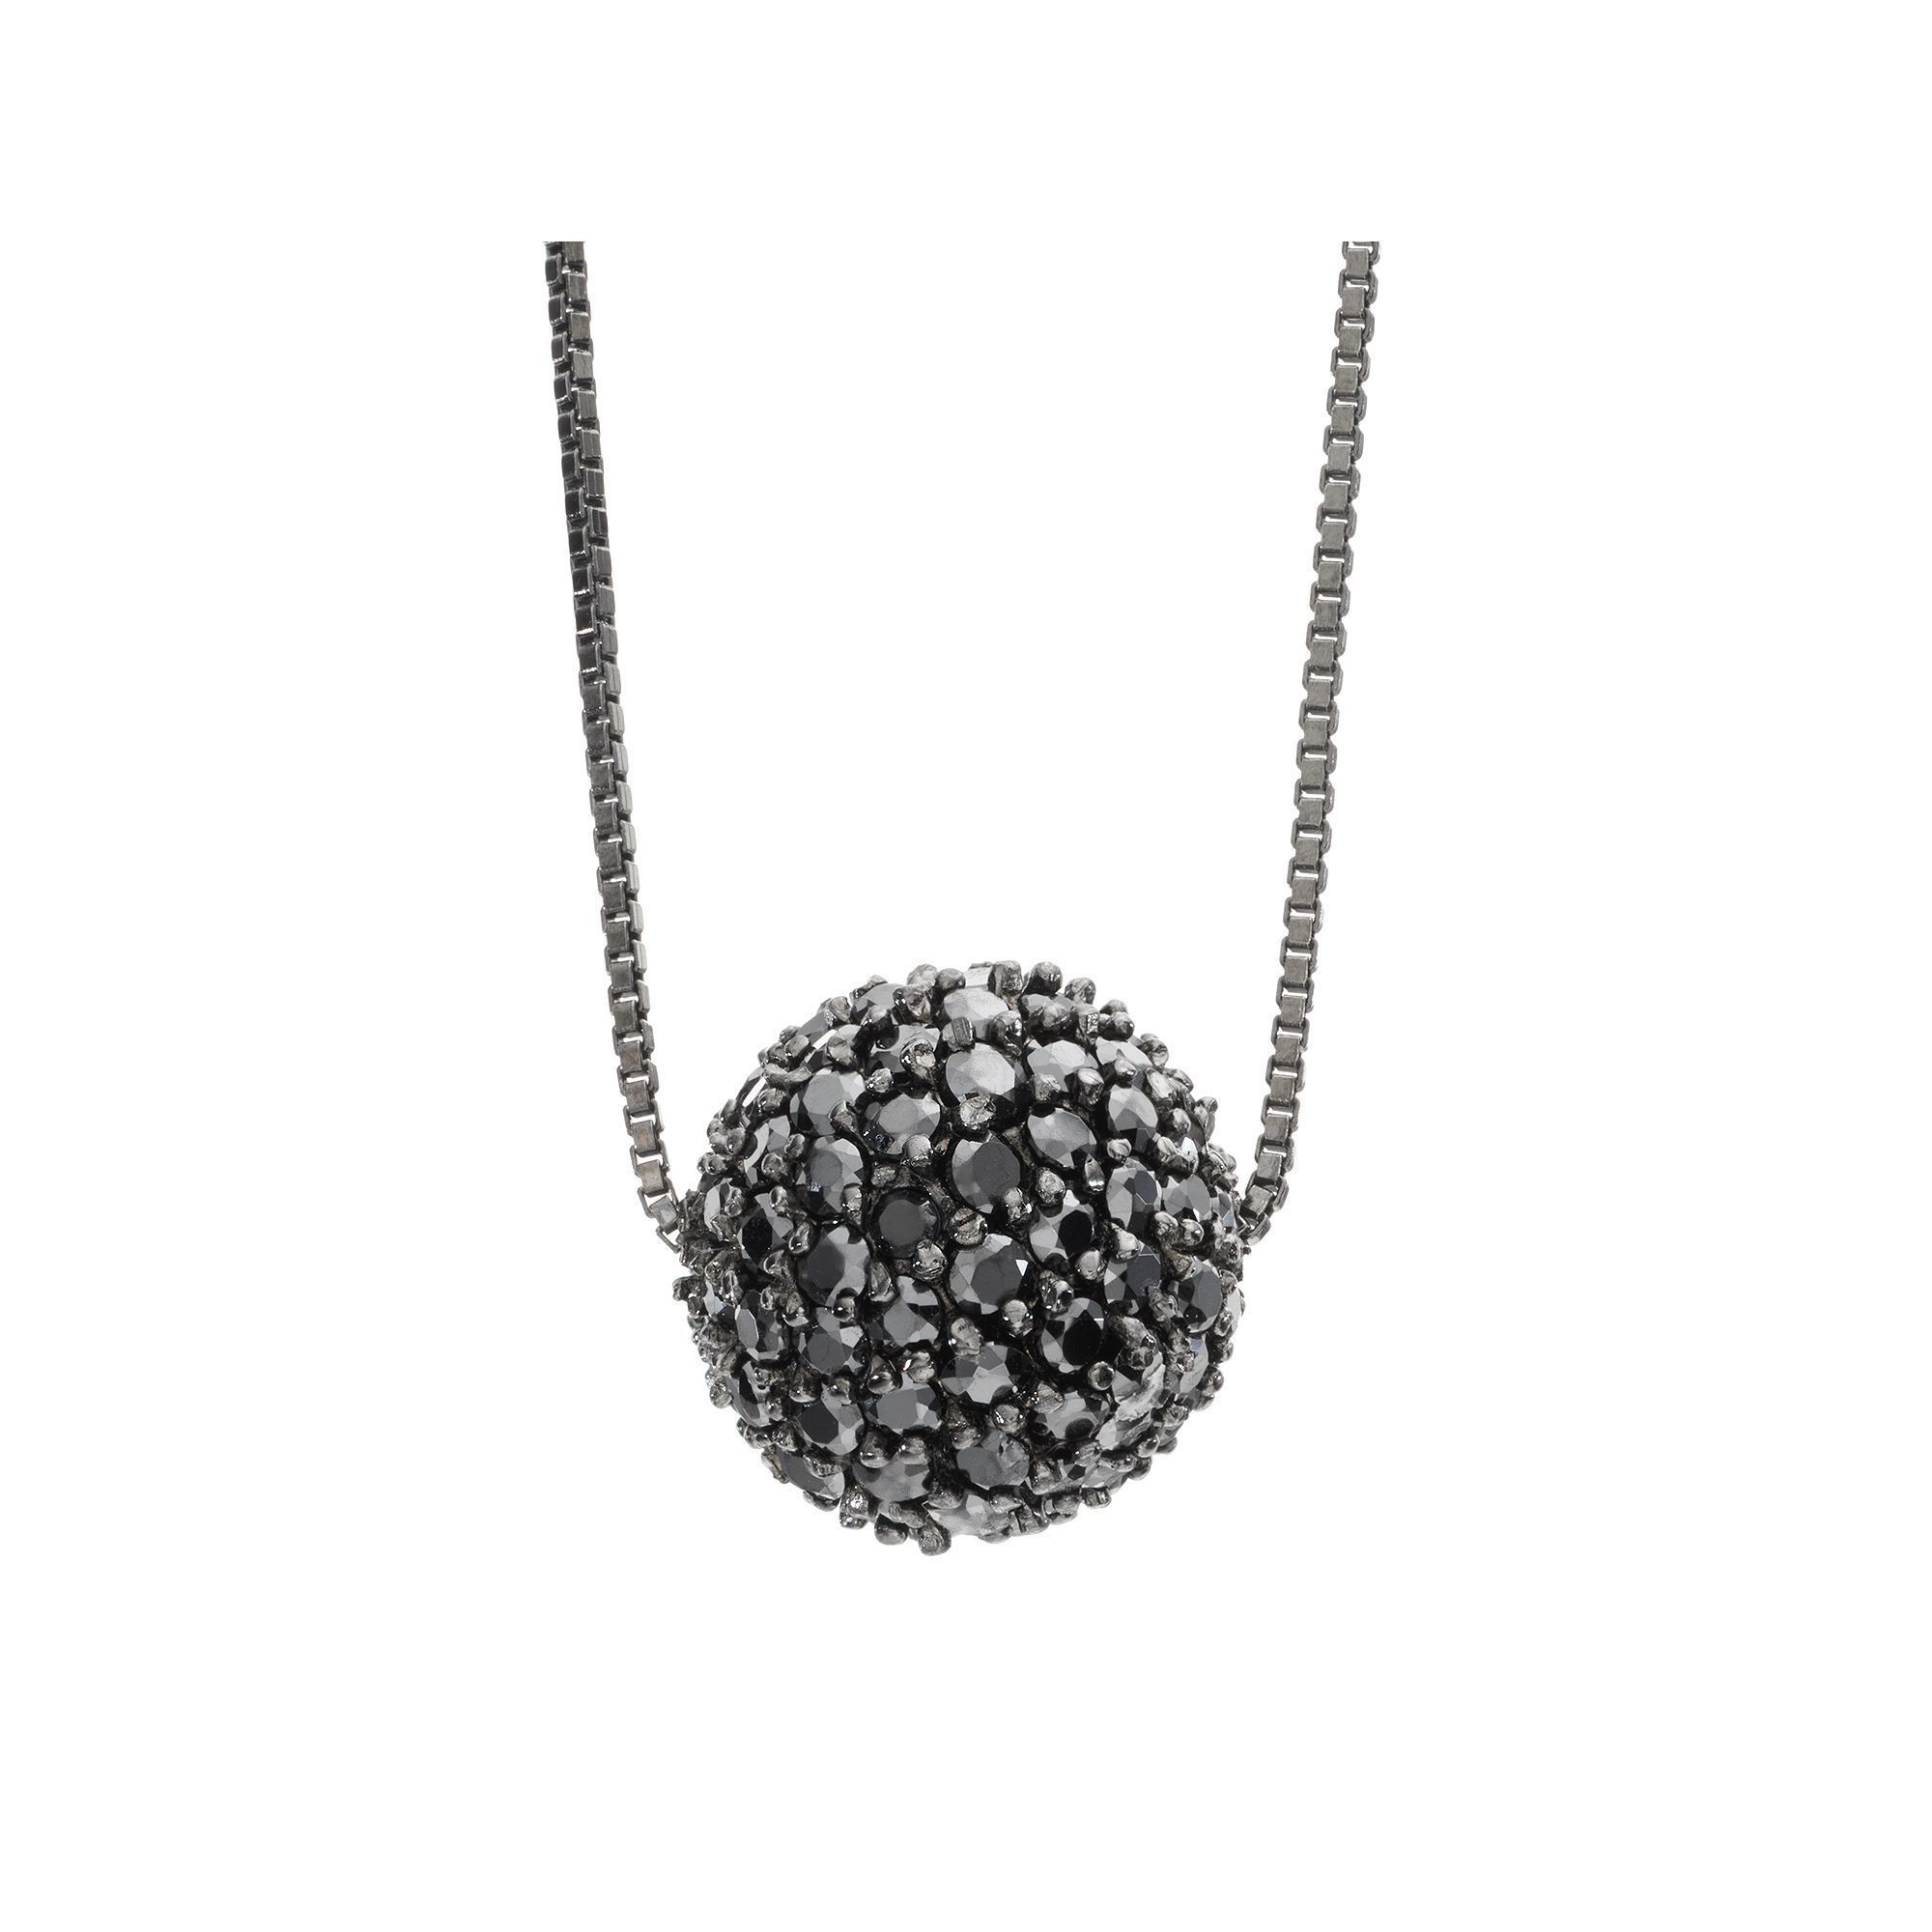 Sophie miller cubic zirconia black rhodium plated sterling silver sophie miller cubic zirconia black rhodium plated sterling silver ball pendant necklace 20 in aloadofball Images